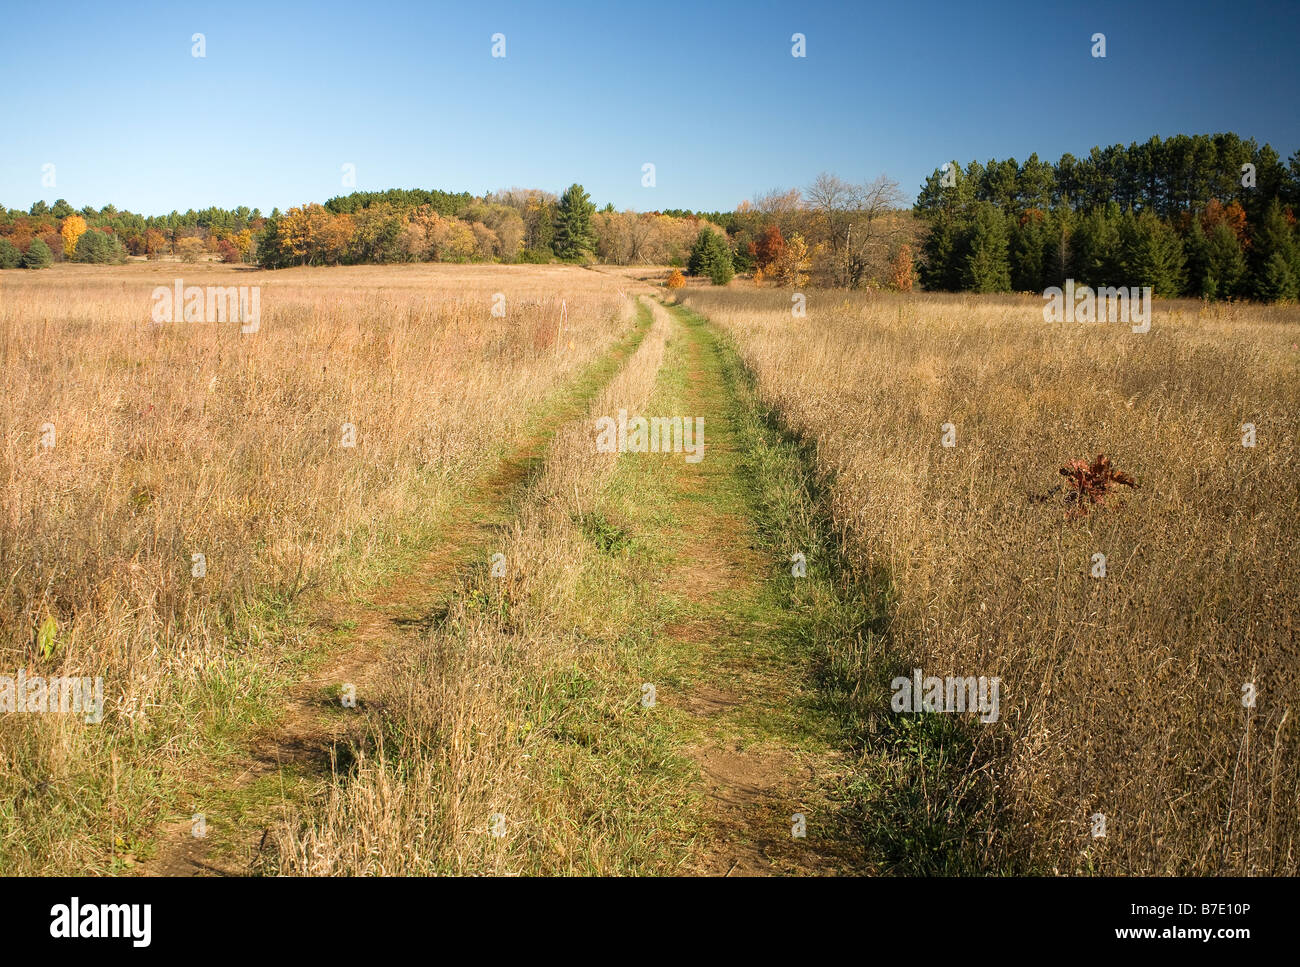 WISCONSIN - The Ice Age National Scenic Trail crossing an open field the Emmons Creek Fishery and Wilderness Area. - Stock Image